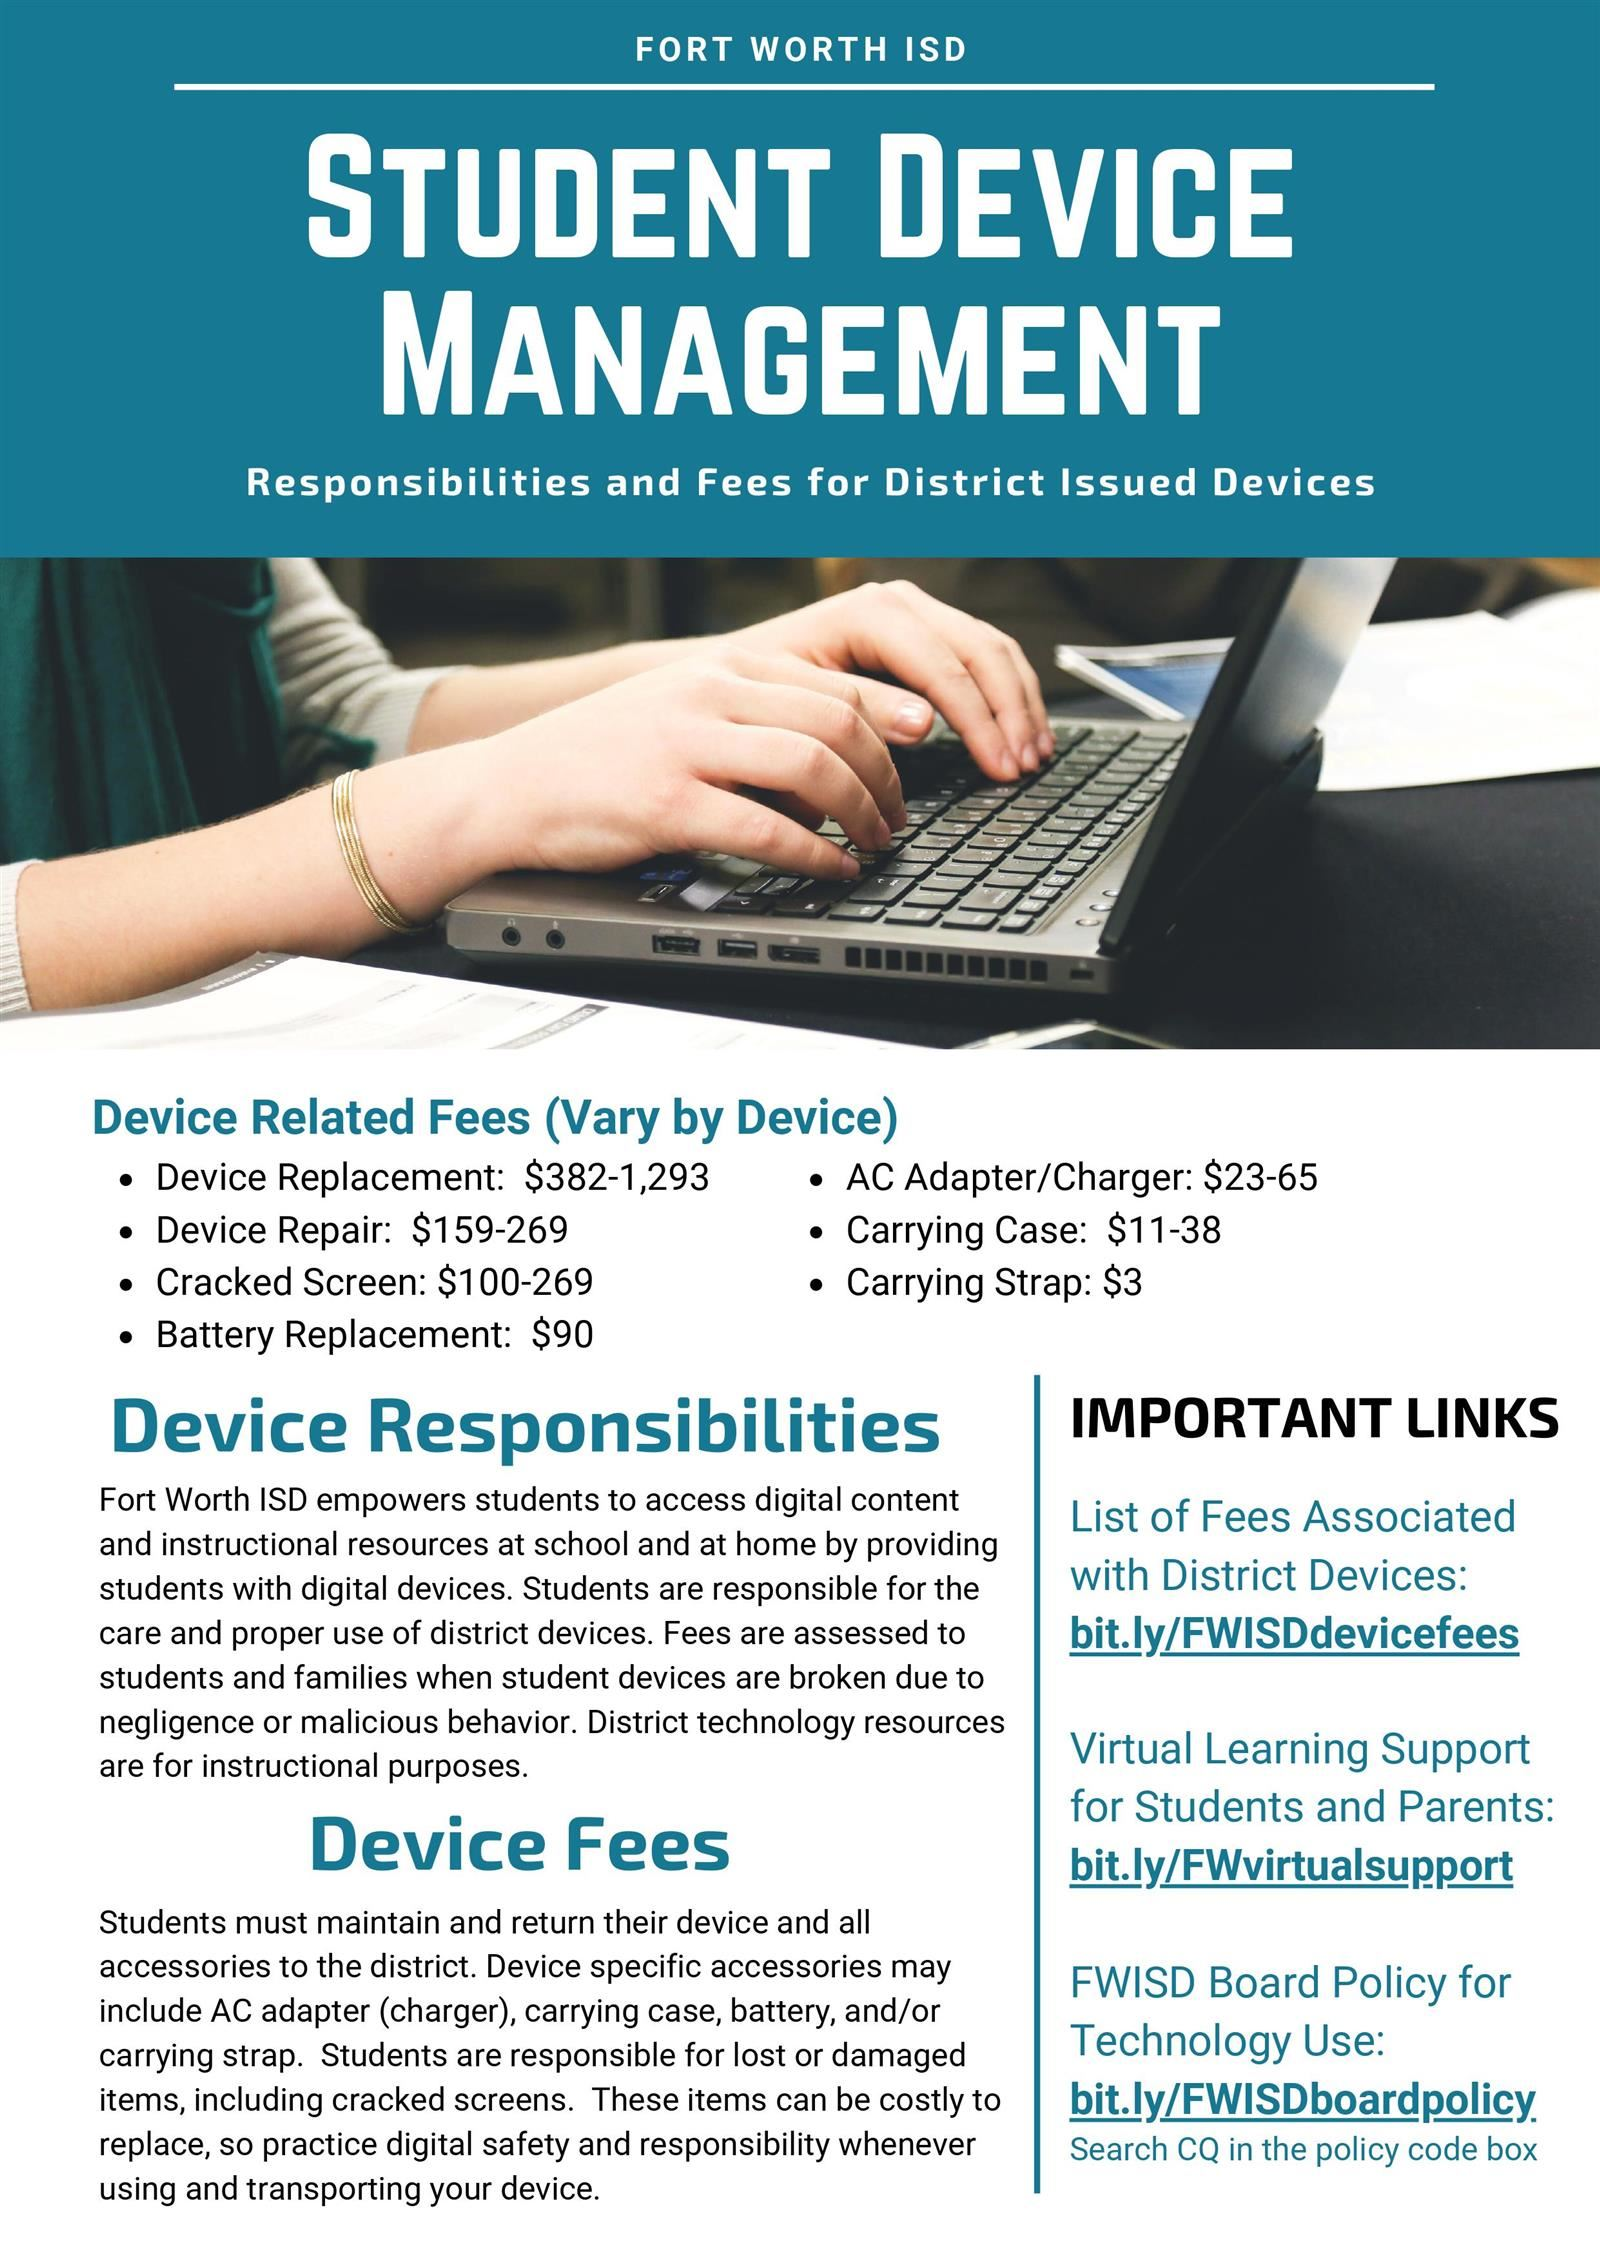 Student Device Management